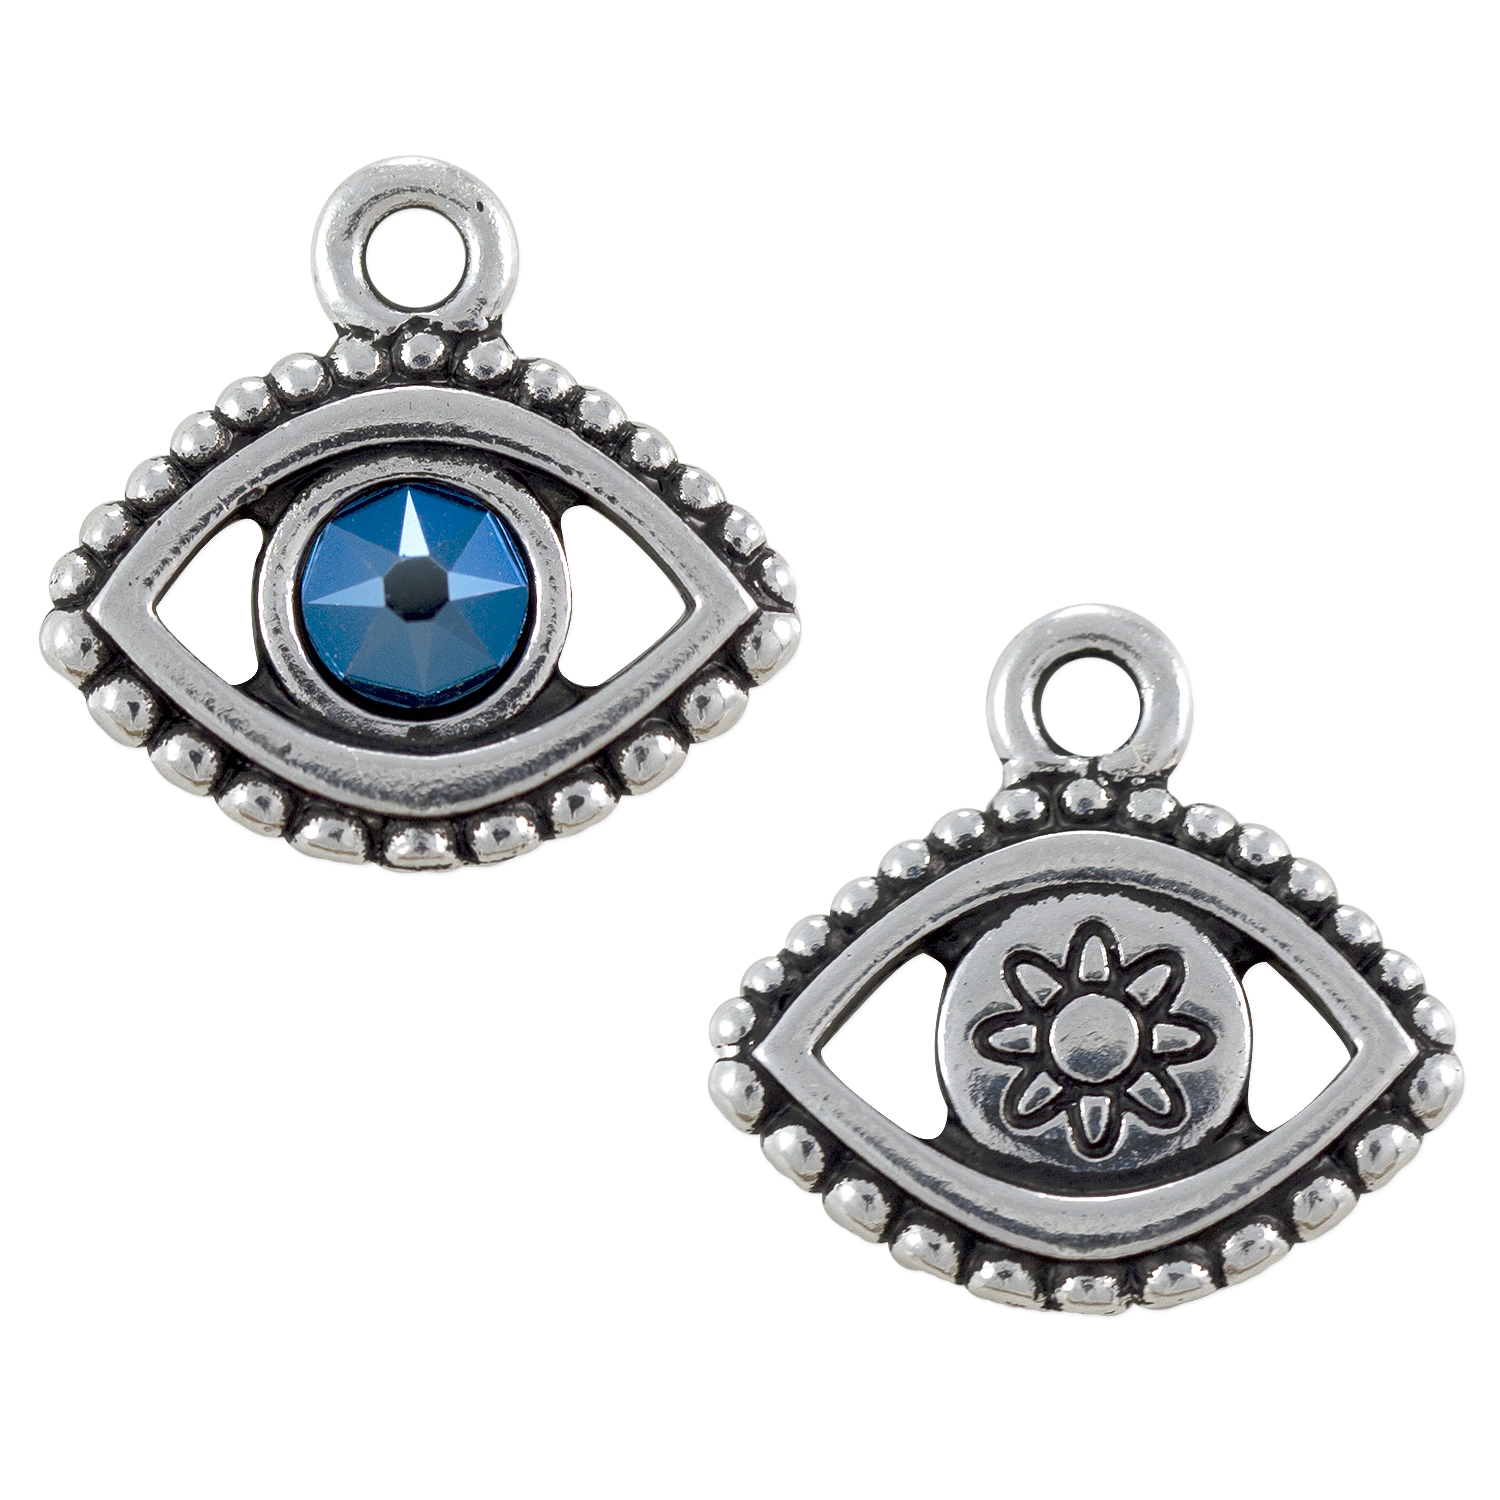 tomar el pelo Por favor mira fuego  TierraCast 15x16mm Antique Silver Plated Evil Eye Charm with Blue Stone |  jewelry charms wholesale cheap | Best Jewelry Making Supplies